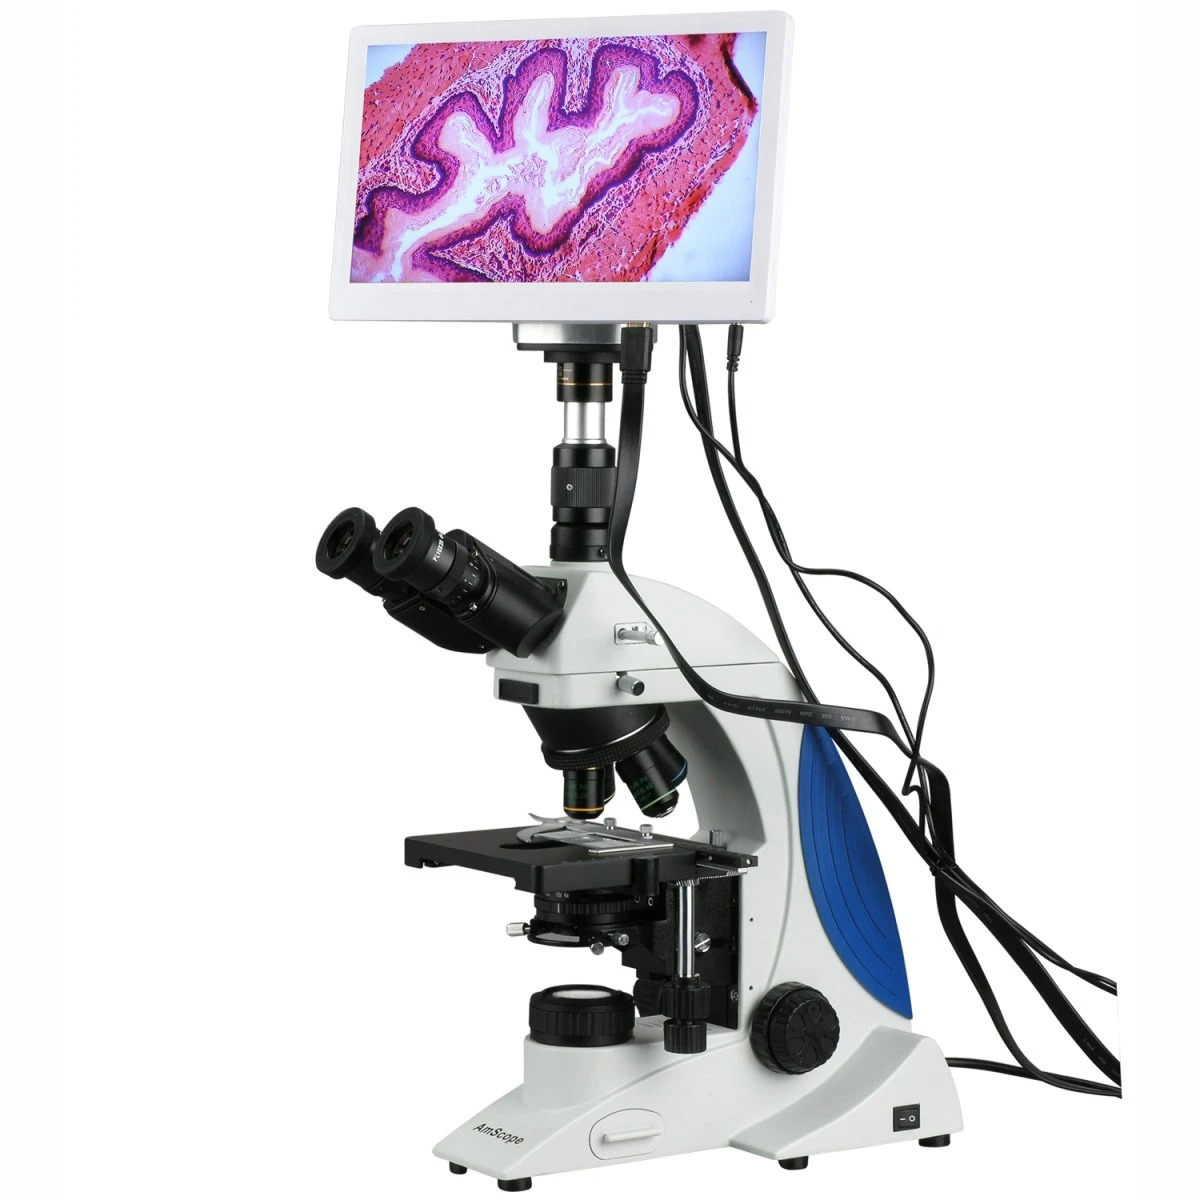 Microscope Device